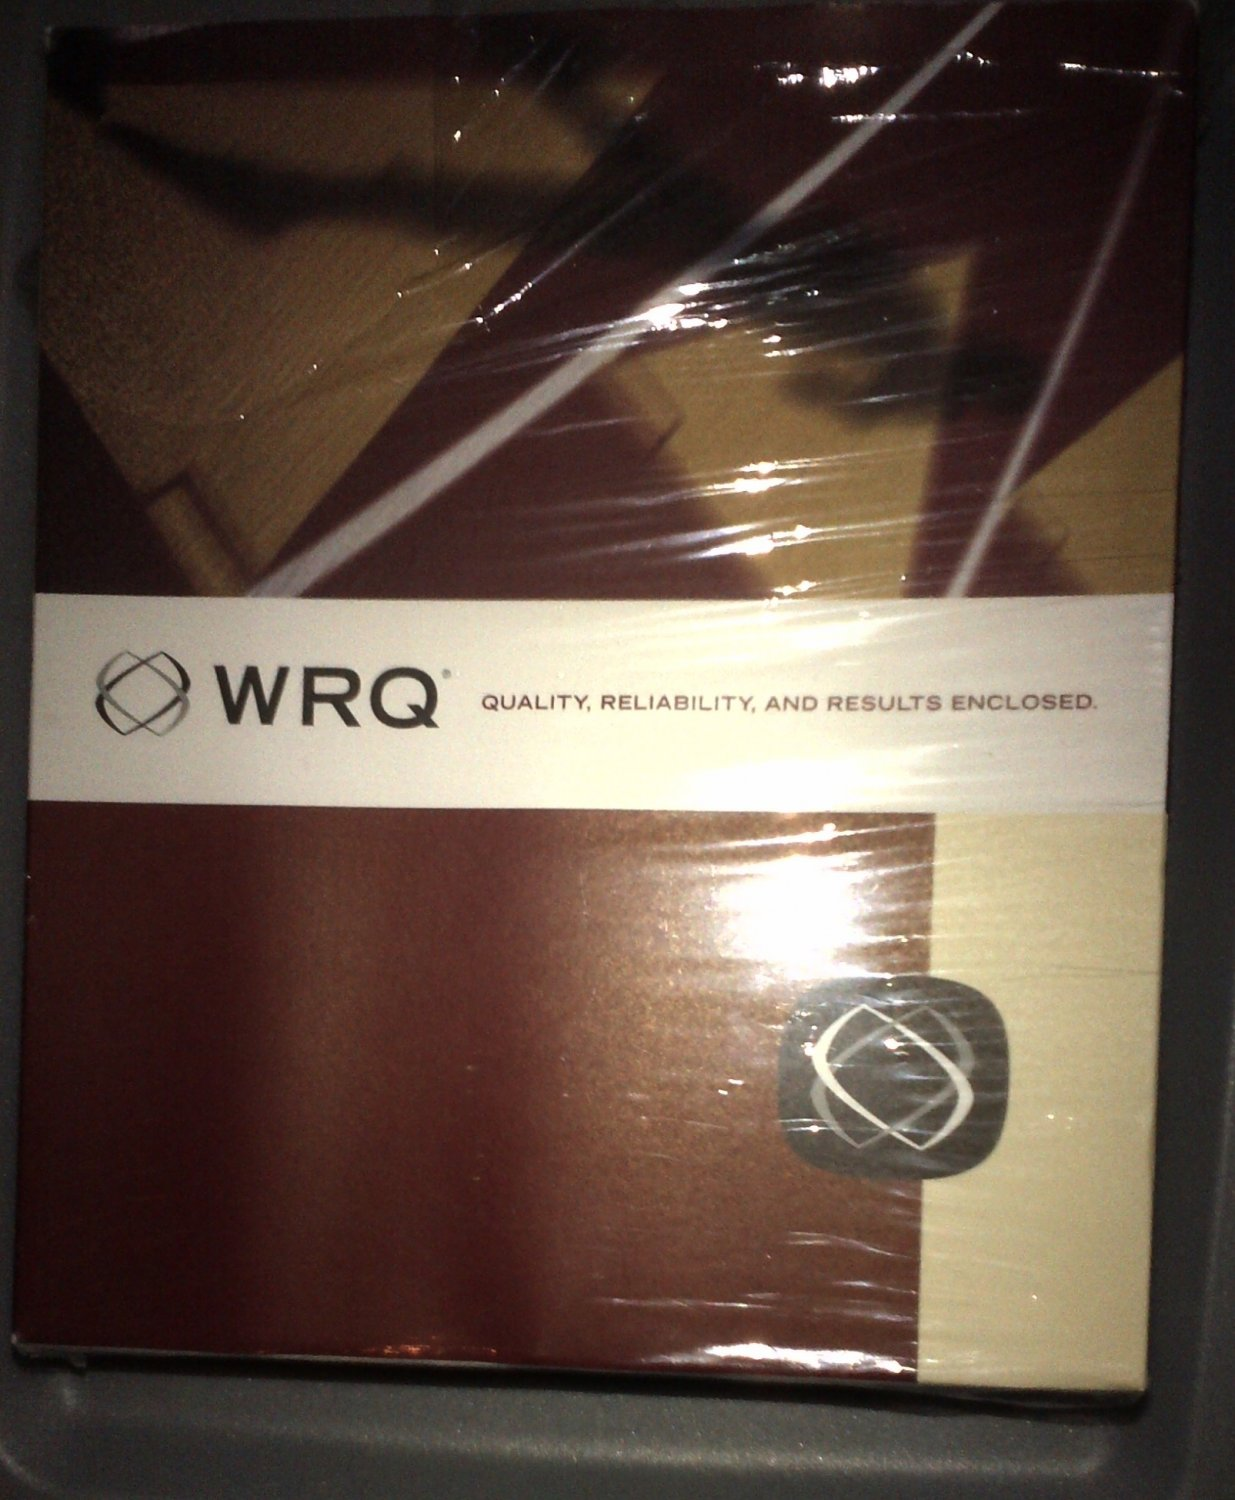 Wrq upg nfs connclient ms32 000 038242